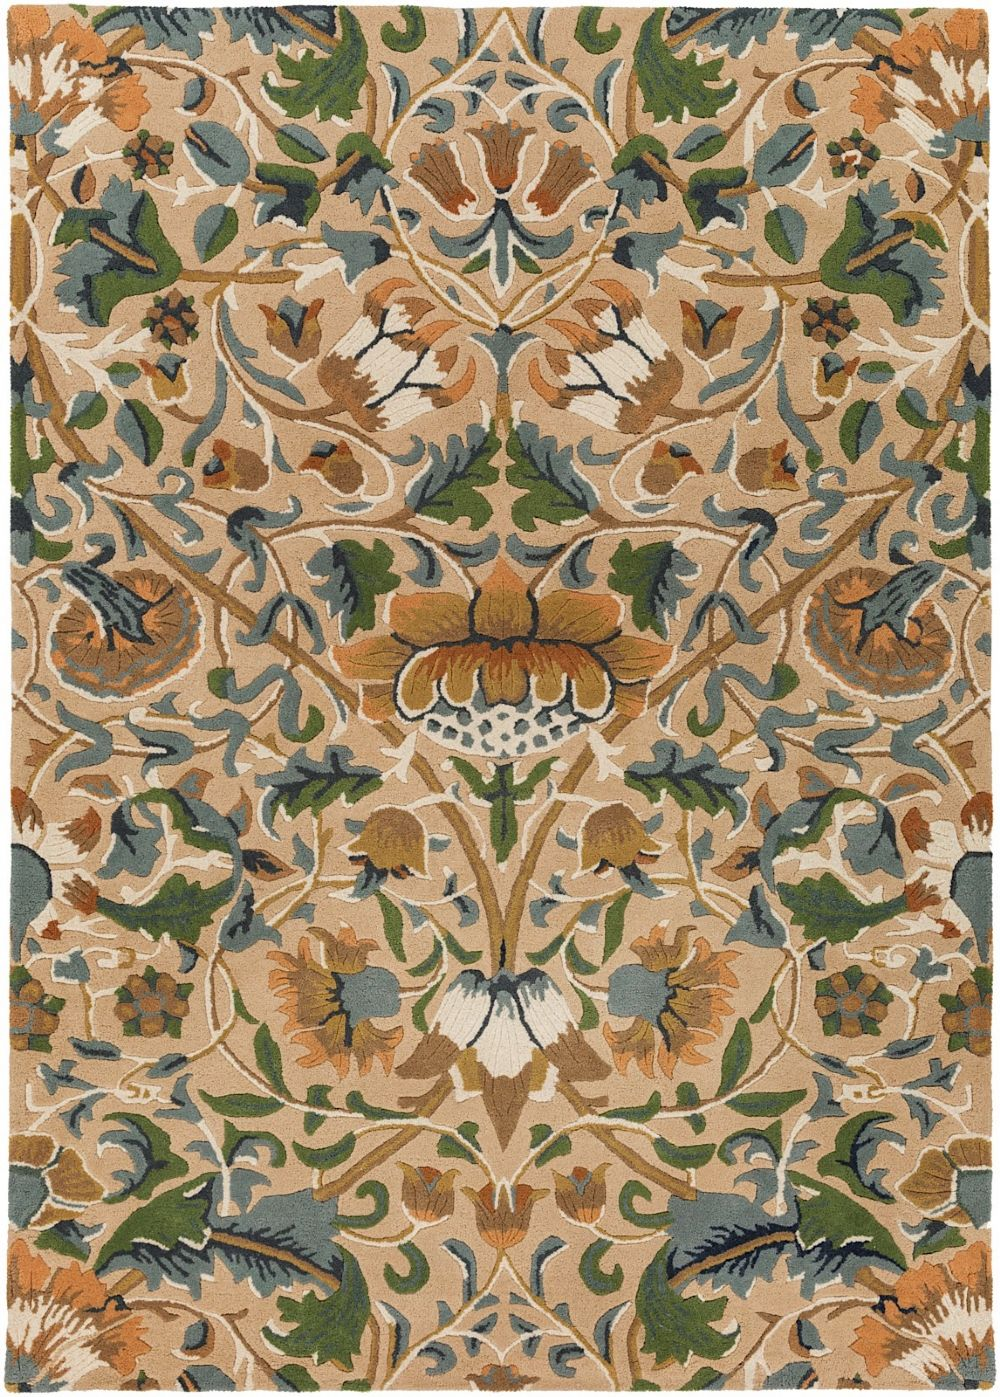 Surya William Morris Country Floral Area Rug Collection